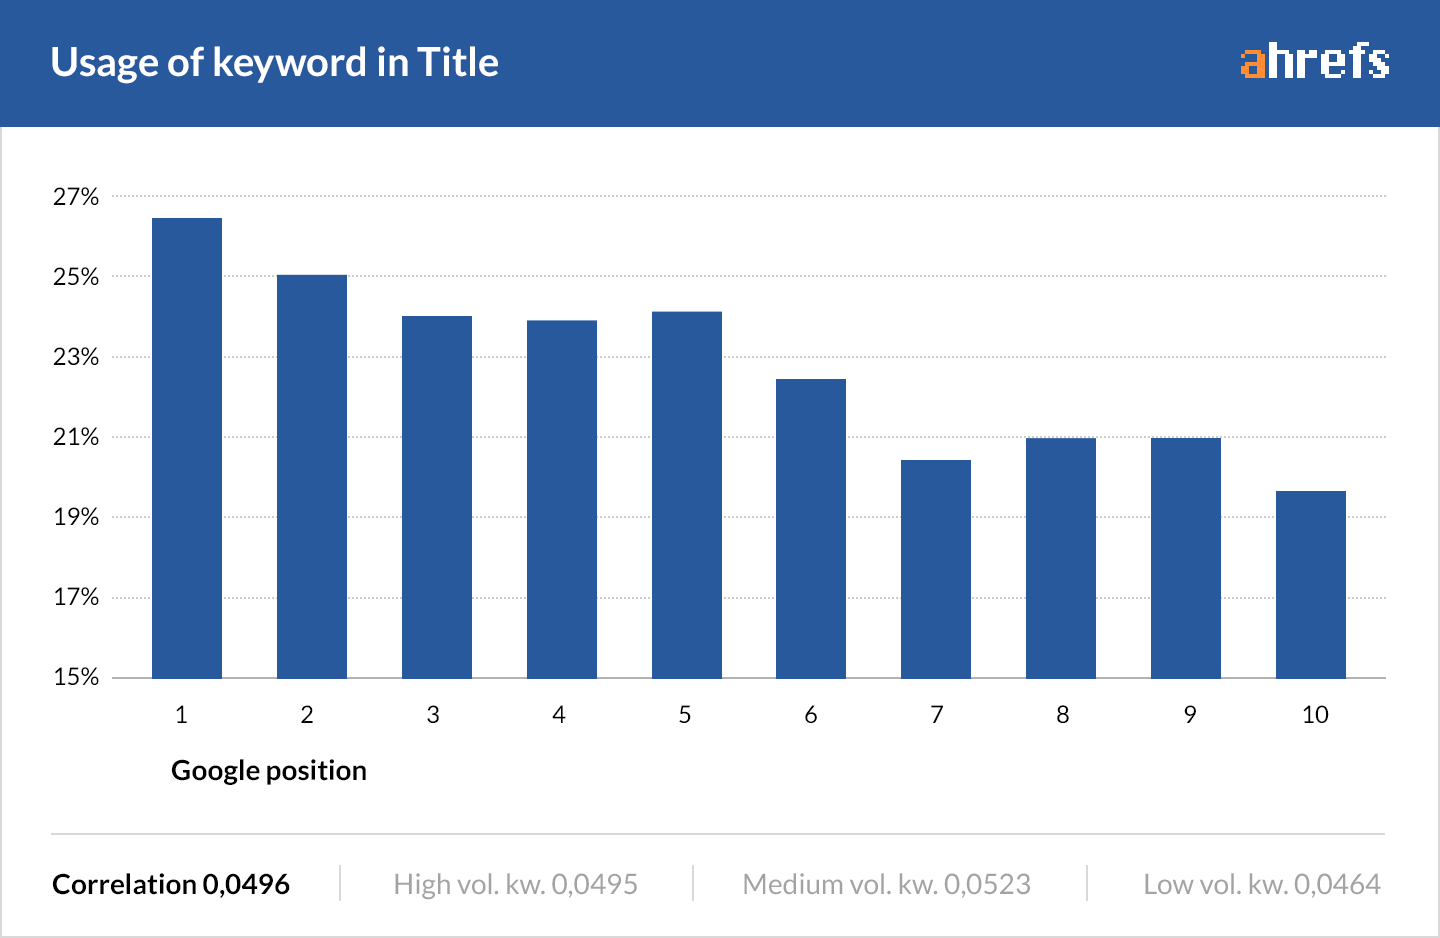 This chart demonstrates a small correlation between keywords used in the title and the first position in the search results